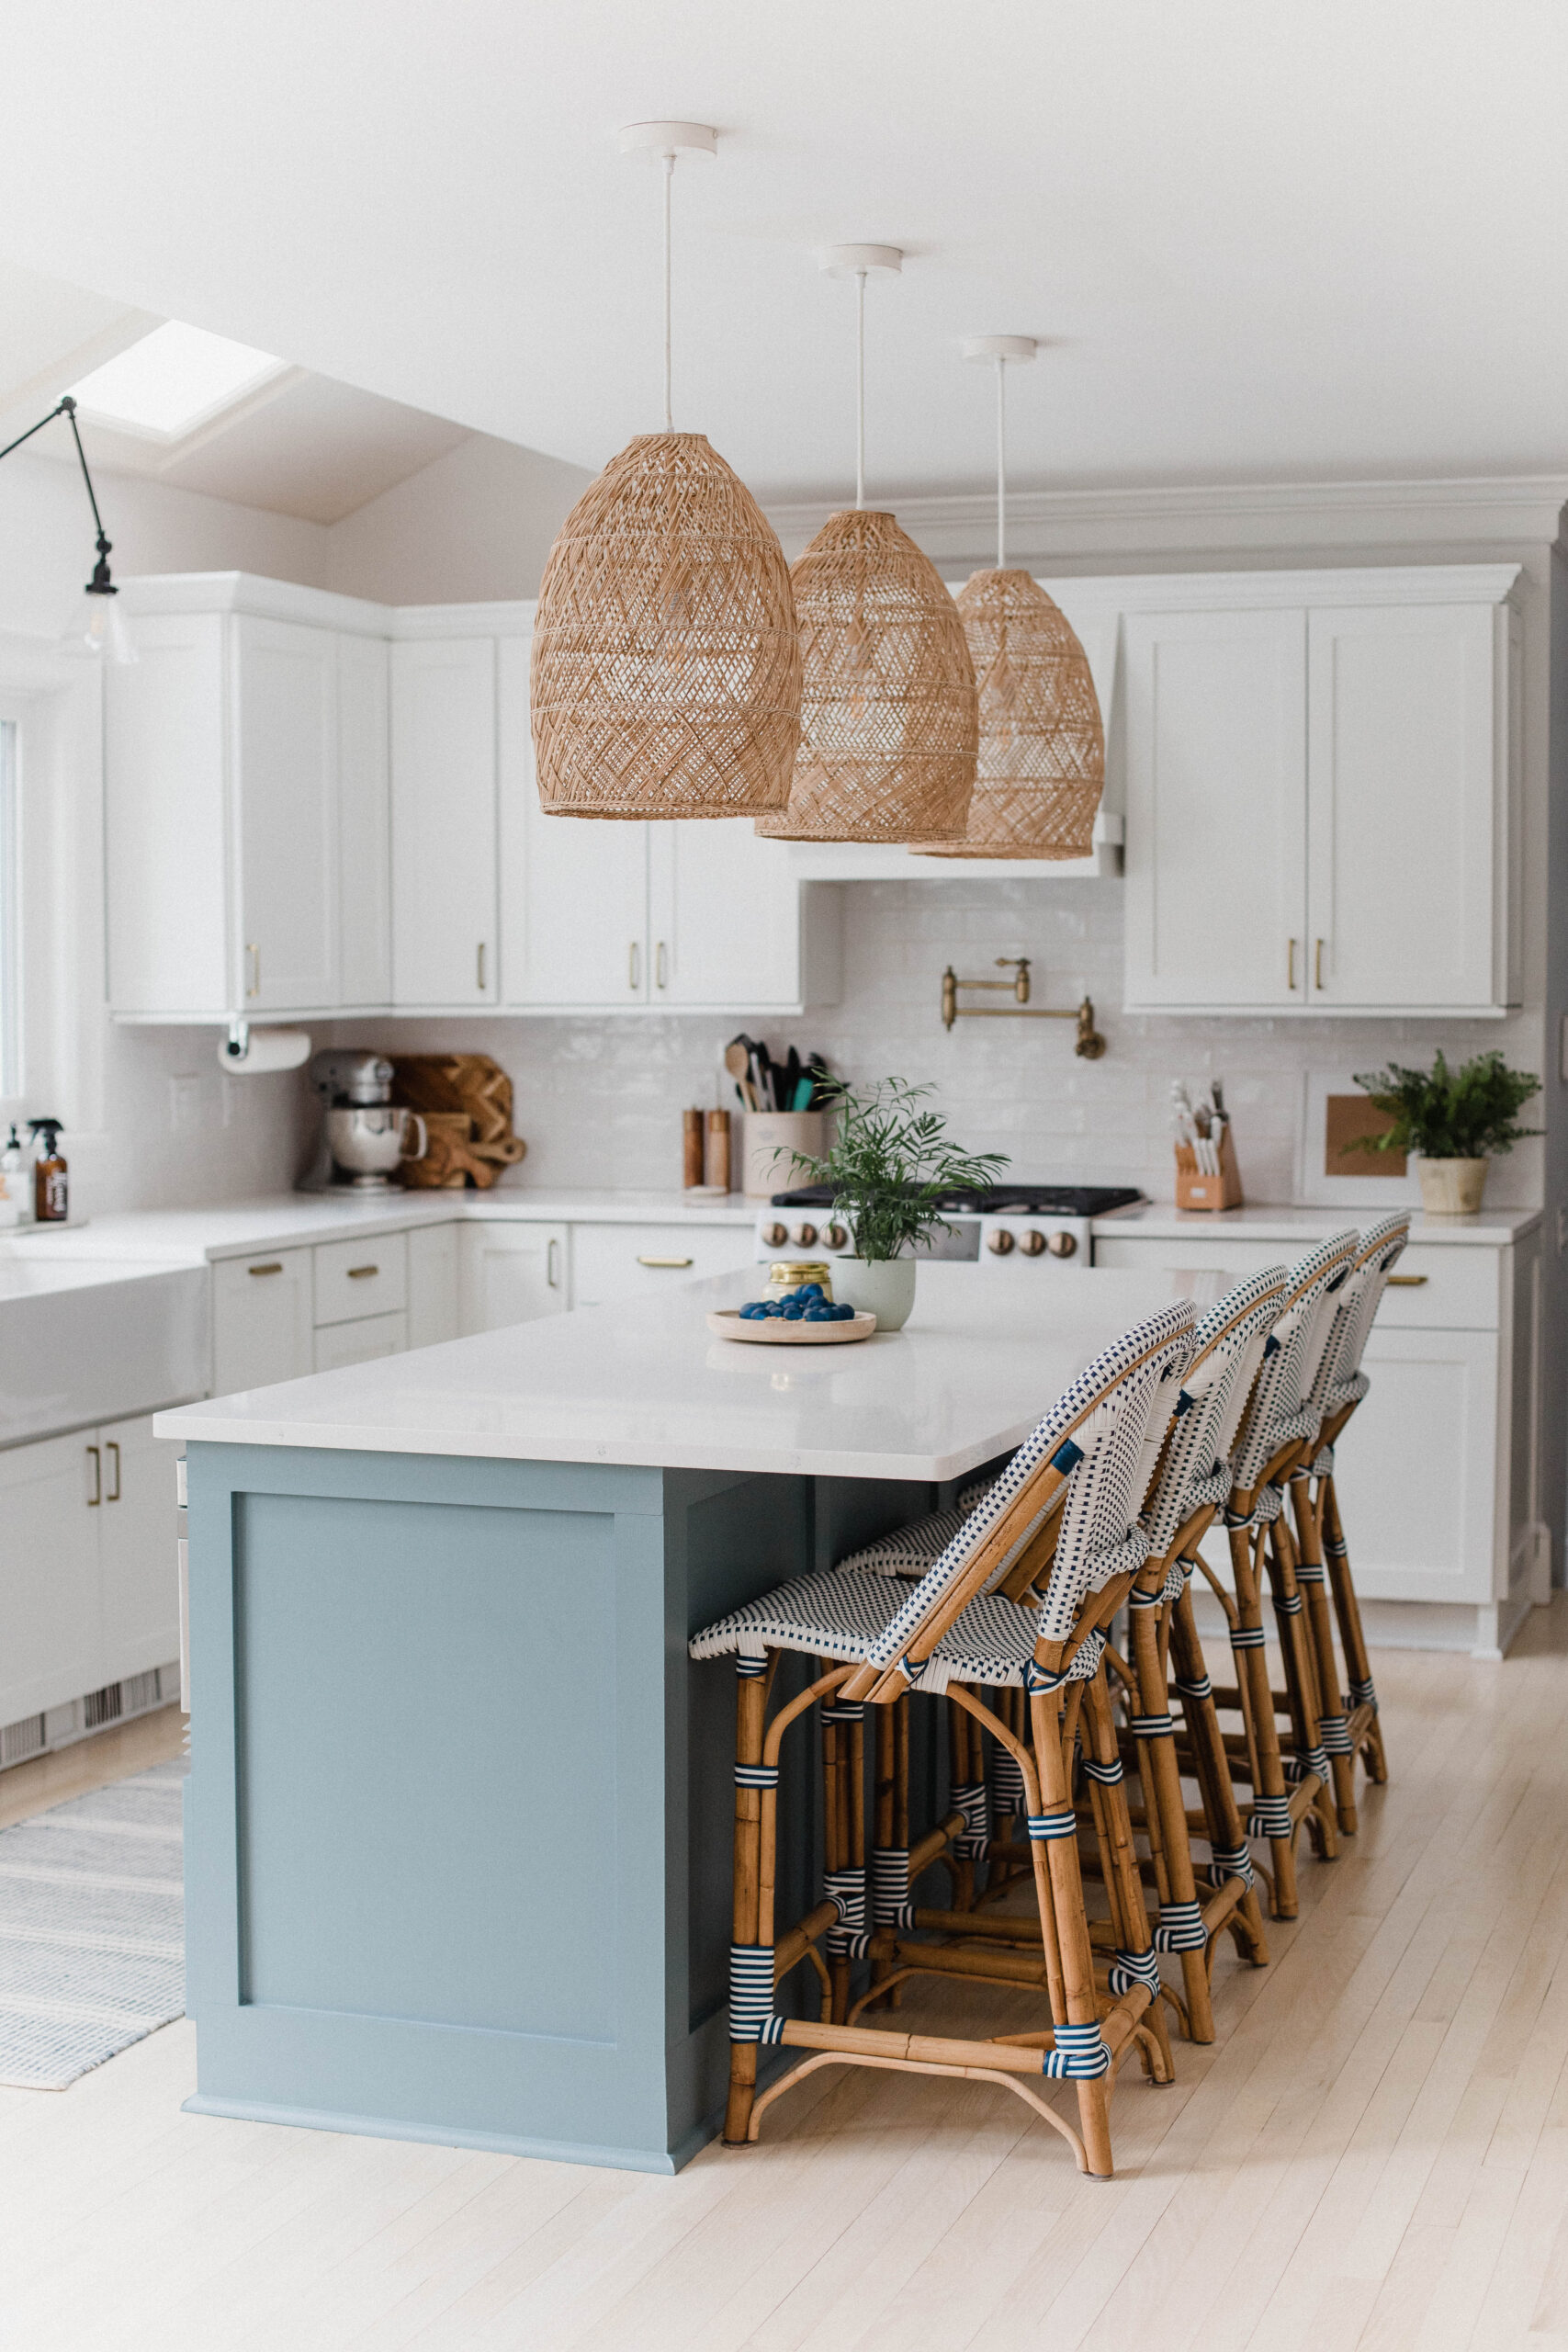 Connecticut life and style blogger Lauren McBride shares the paint colors in her home and one tip on selecting paint colors.